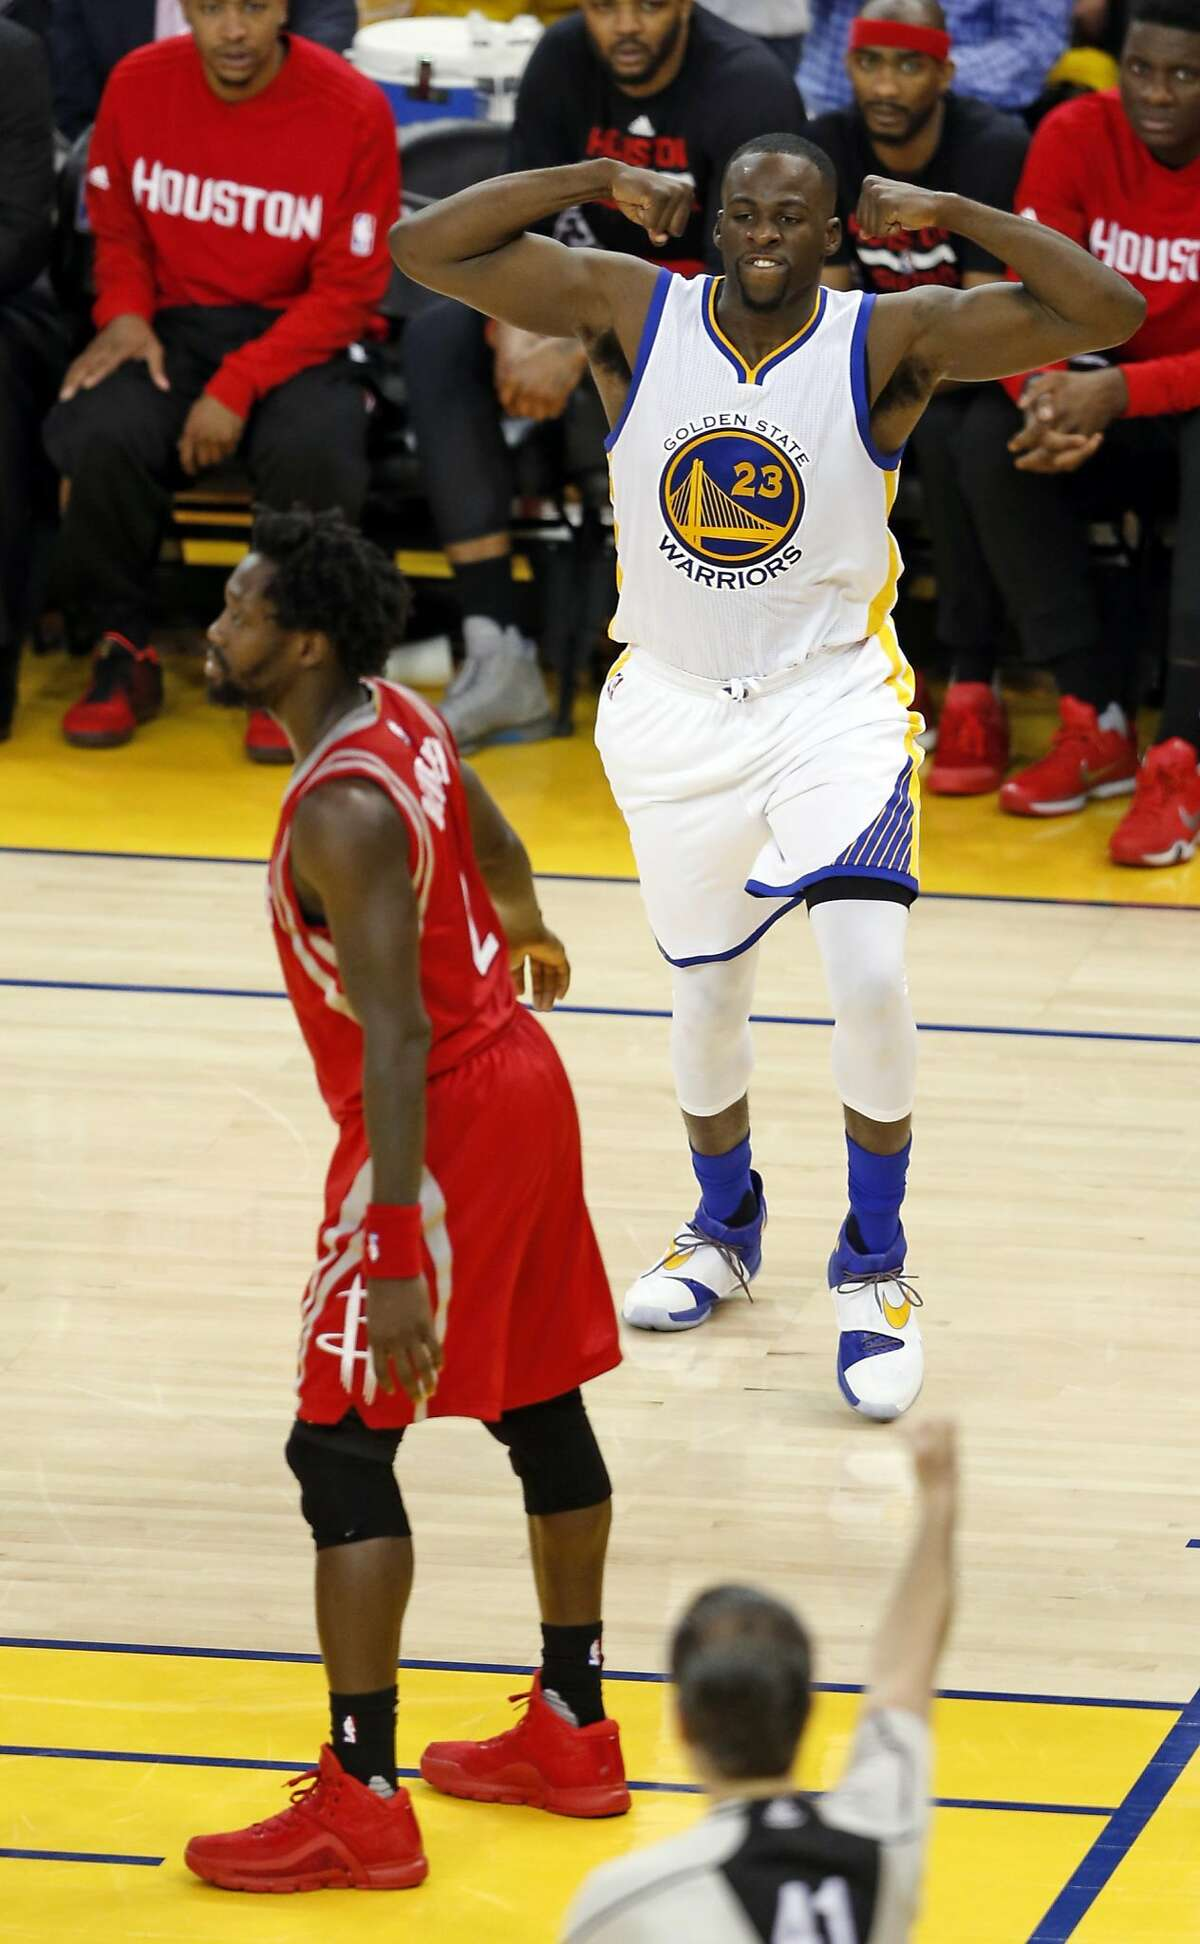 Golden State Warriors' Draymond Green shows his Superman pose after scoring and being fouled by Houston Rockets' Patrick Beverley 3rd quarter of Warriors' 114-81 win in Game 5 of the first round of the NBA Playoffs at Oracle Arena in Oakland, Calif., on Wednesday, April 27, 2016.